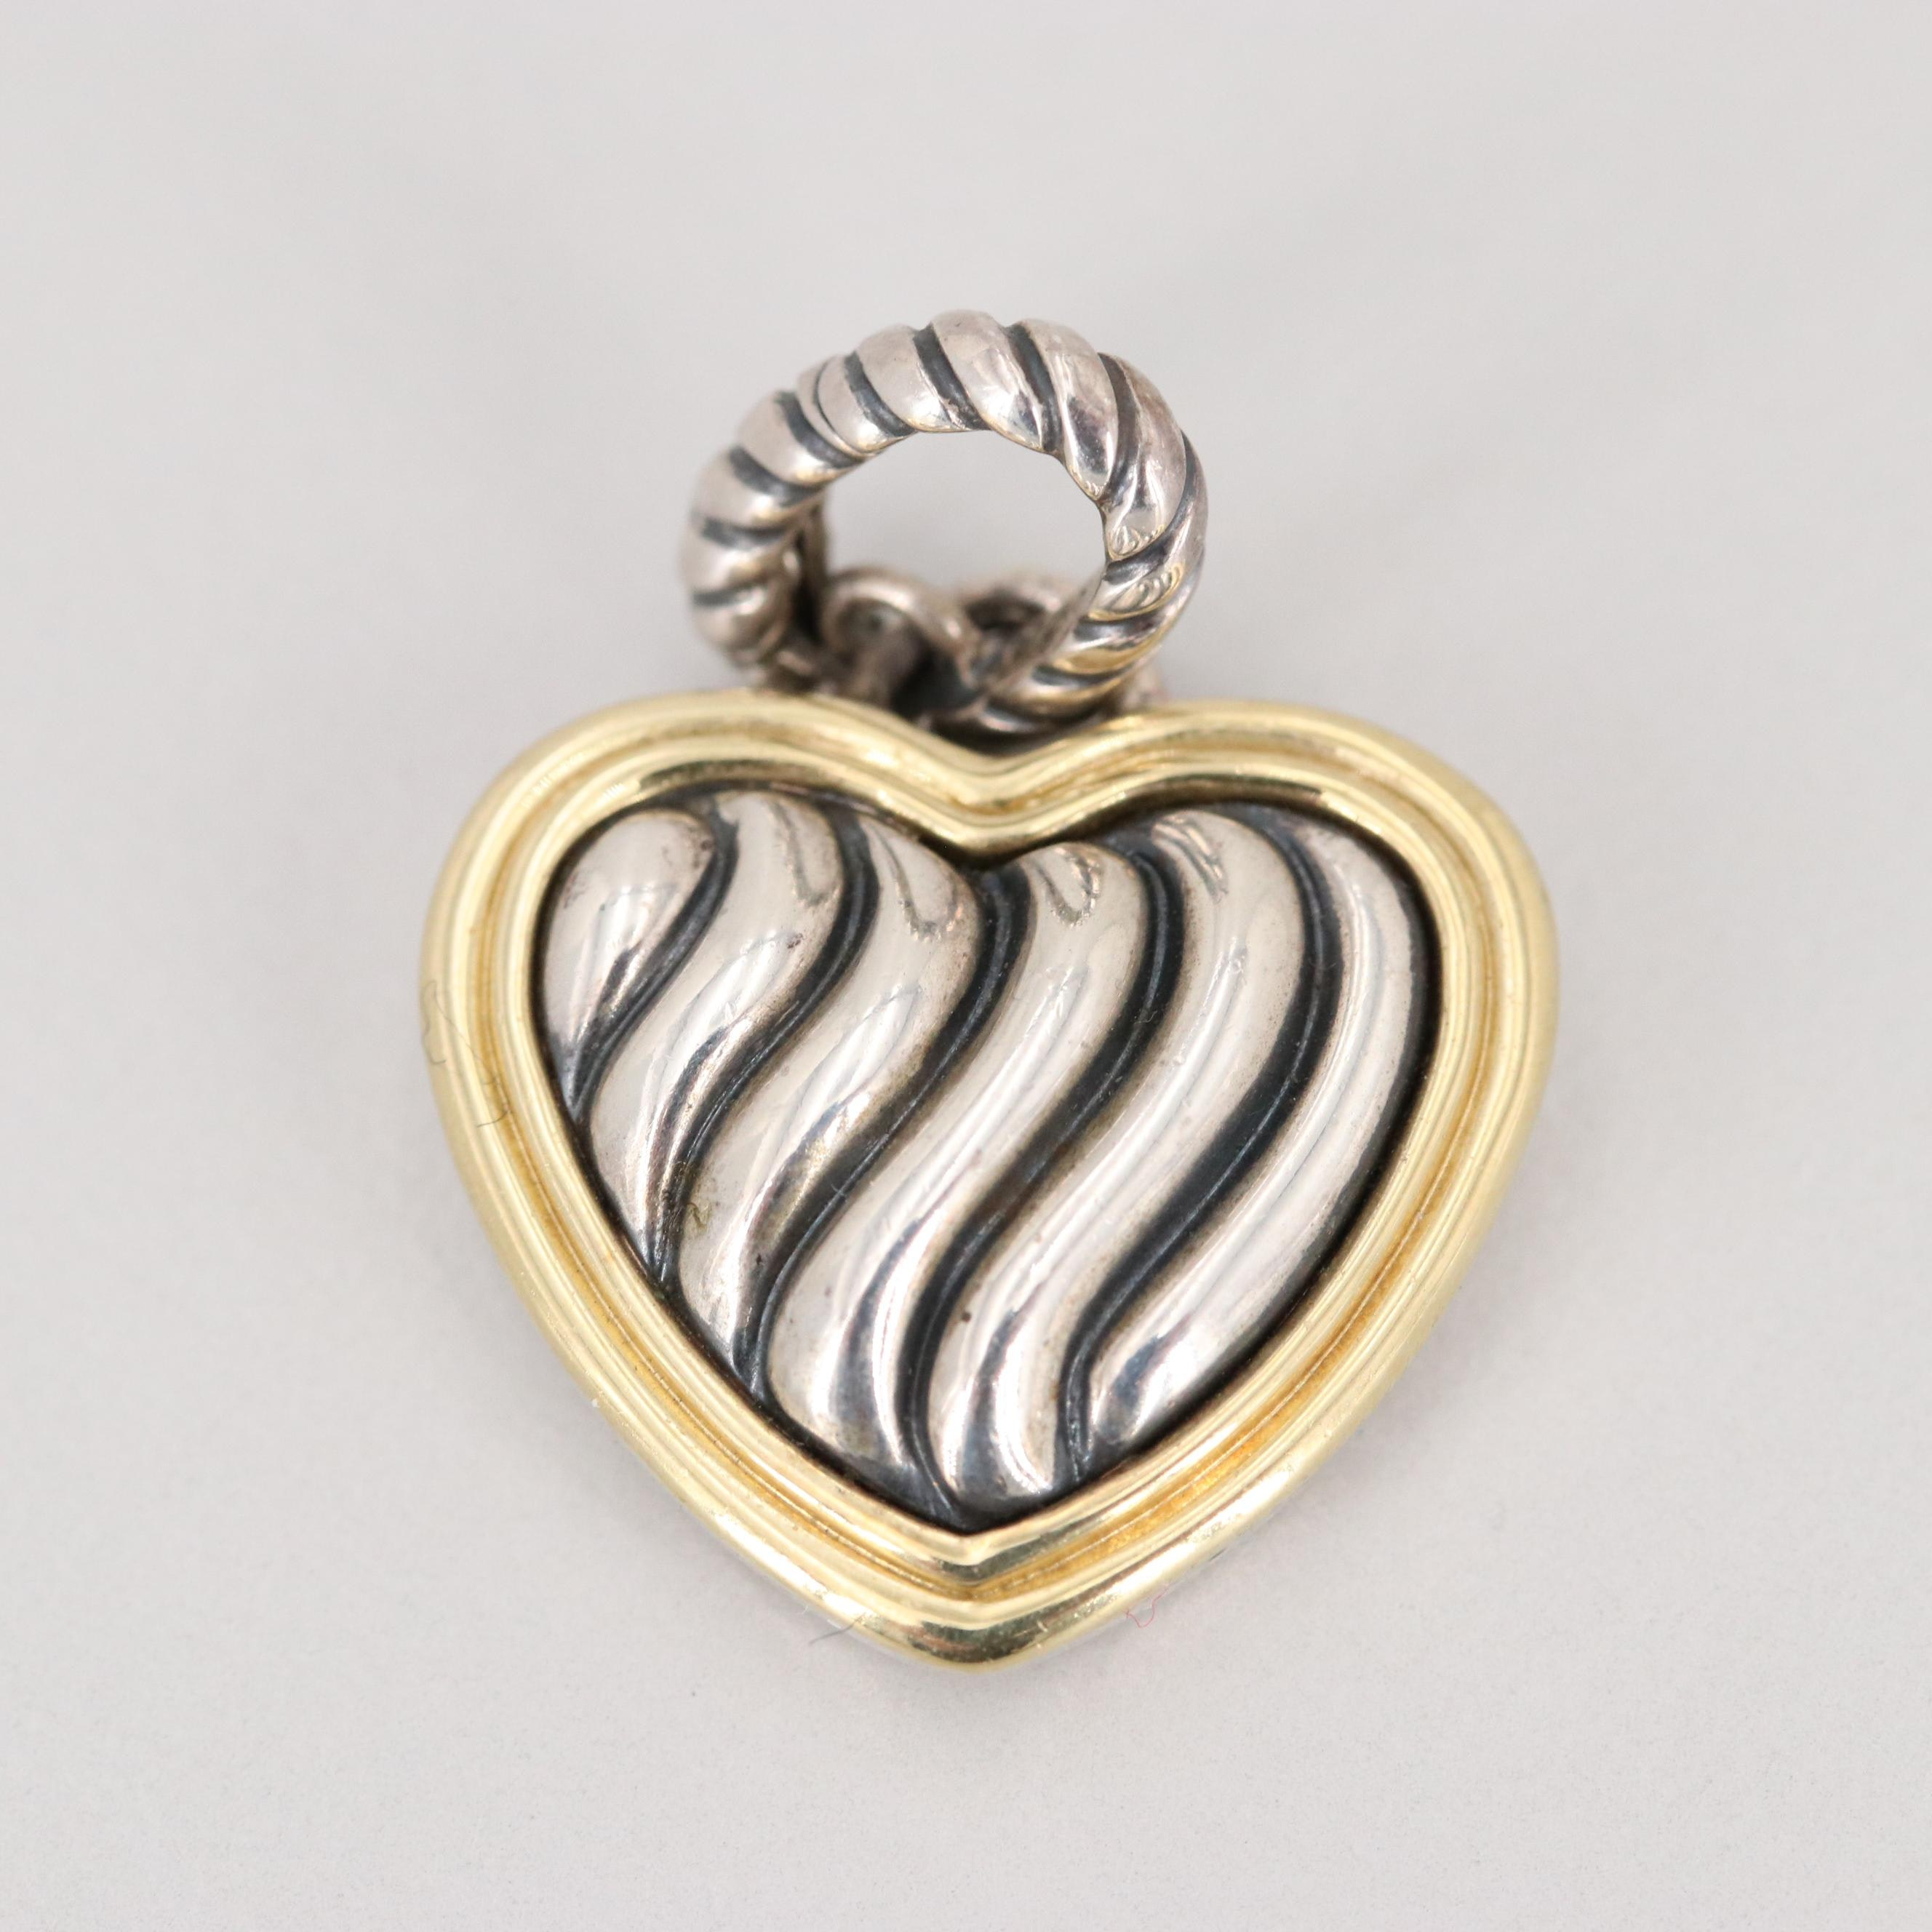 David Yurman Sterling Silver Heart Shaped Pendant with 18K Yellow Gold Accent